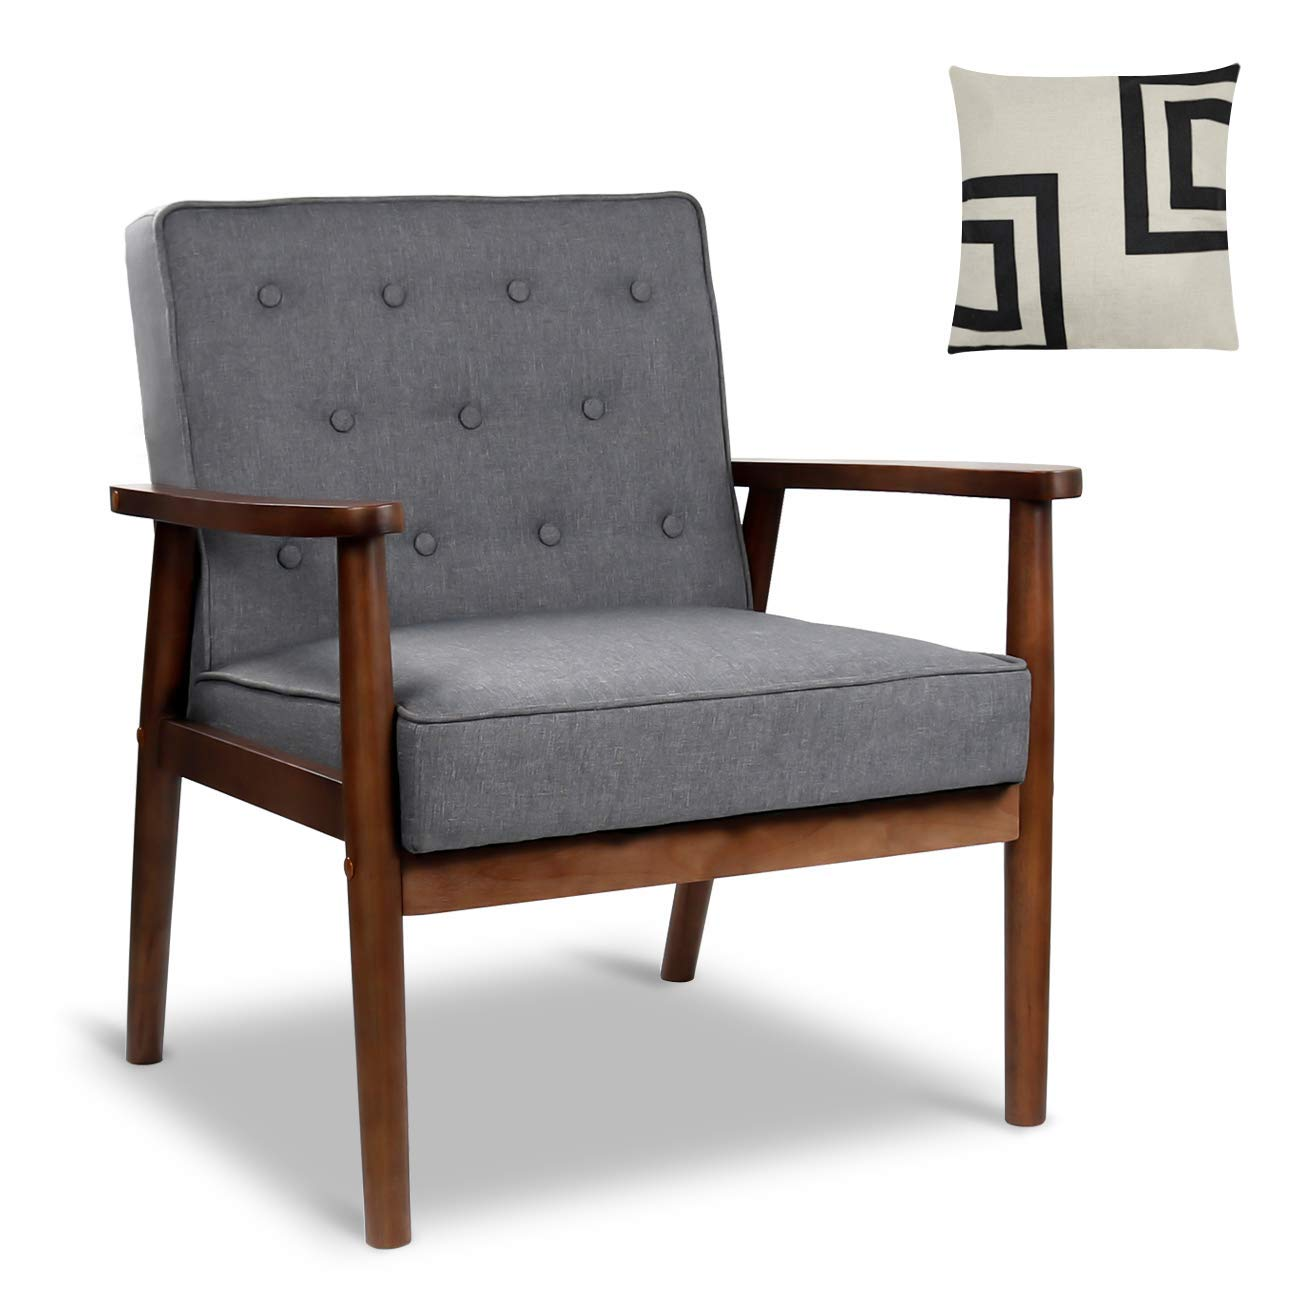 Mid-Century Retro Modern Accent Chair Wooden Arm Upholstered Tufted Back Lounge Chairs Seat Size 24.4'' 18.3'' (Deep) (Grey Fabric) by JIASTING